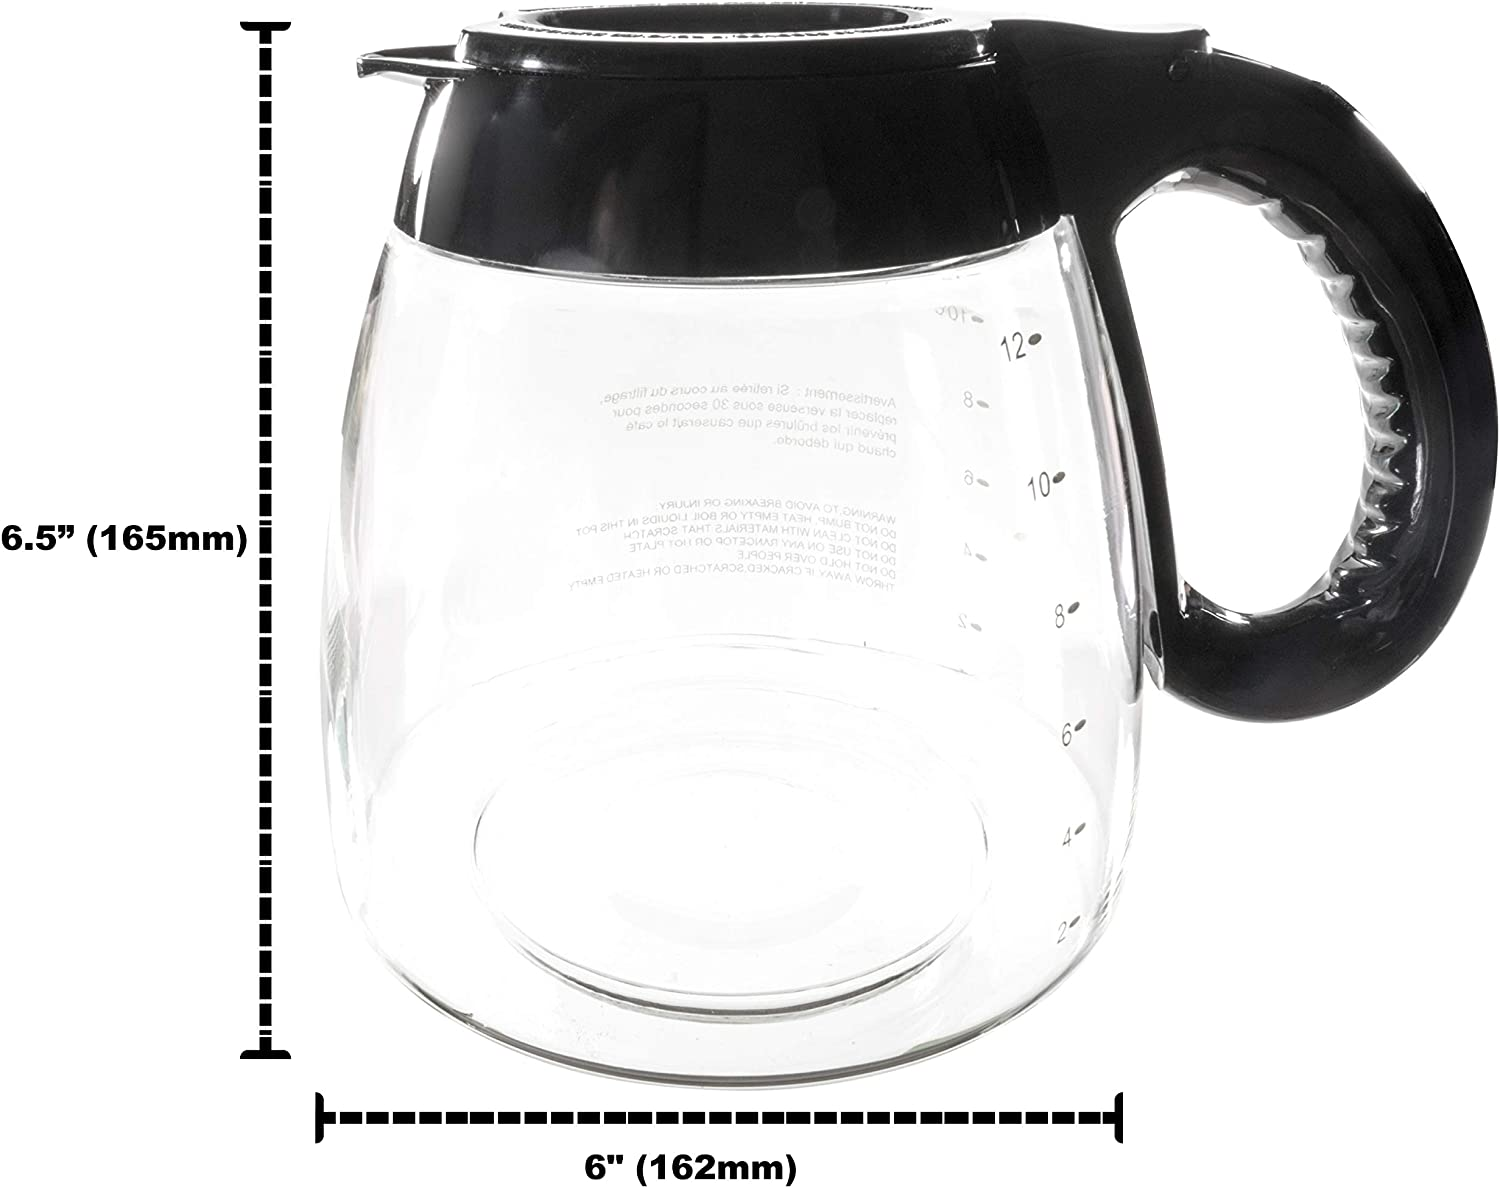 Unold Machine Coffee/' Steel Black Capacity Tazze12 Display Carafe CHRISTMAS GIFT